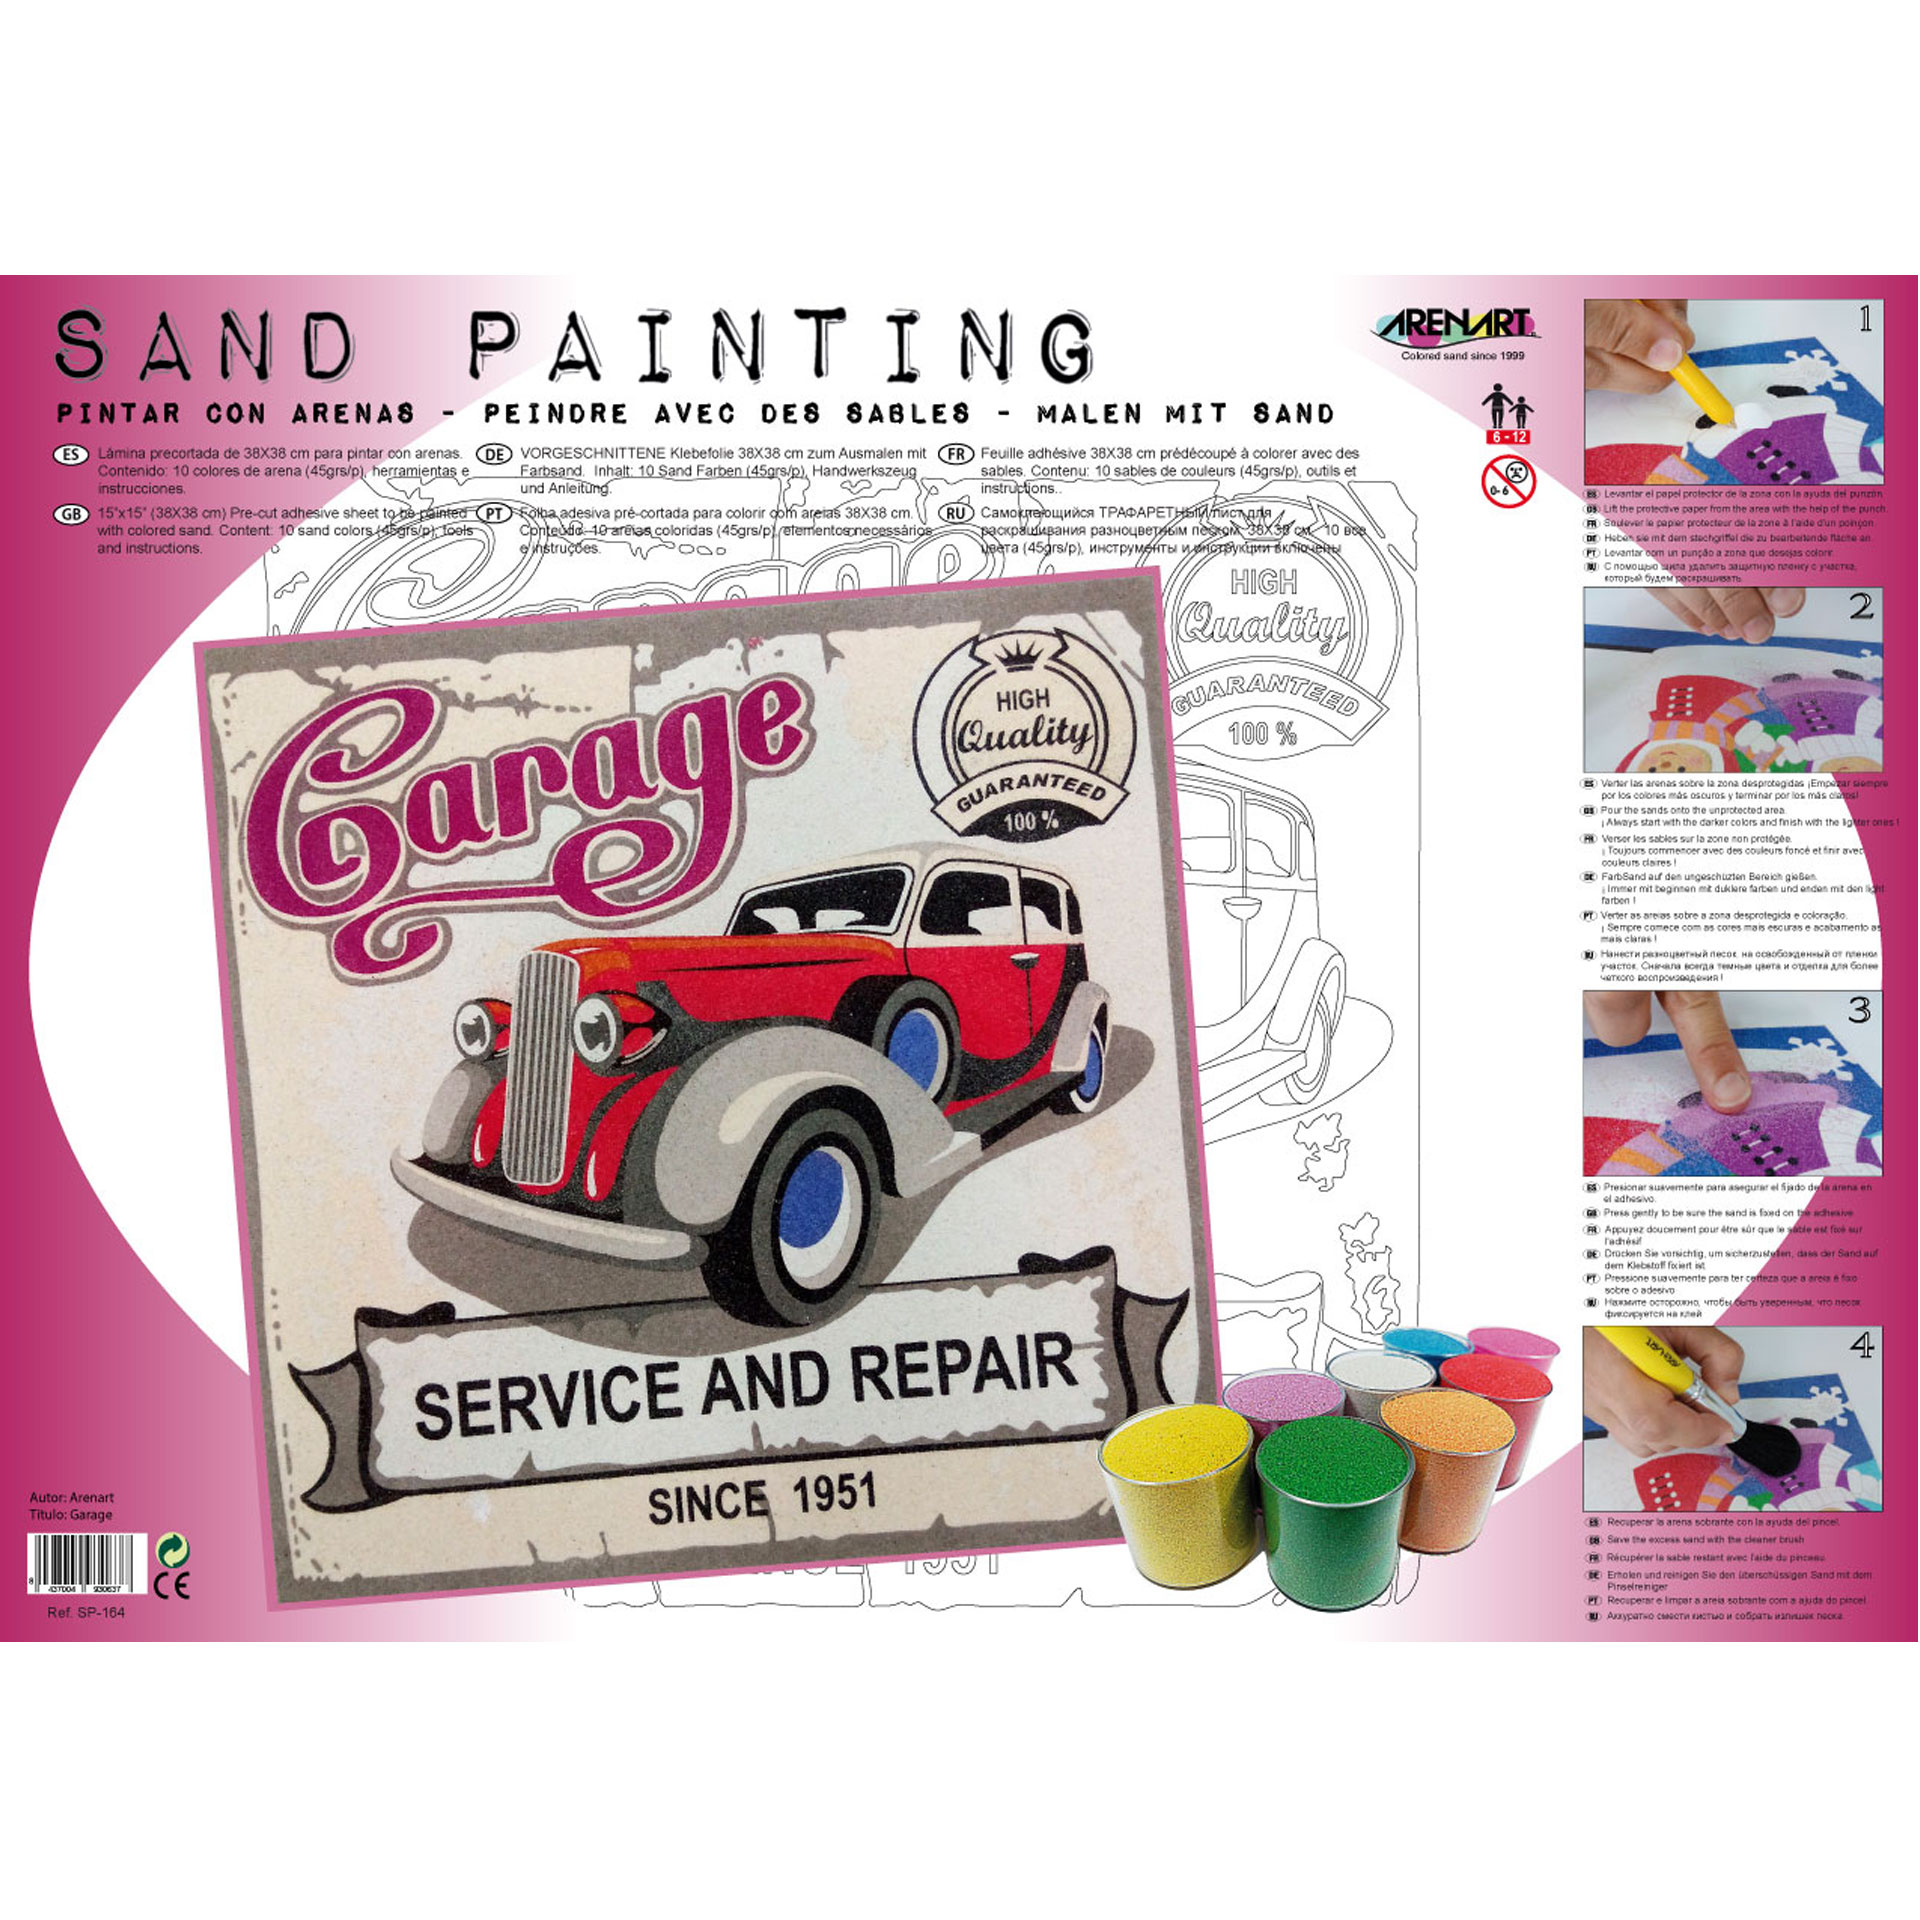 Sand Painting Garage Since 1951